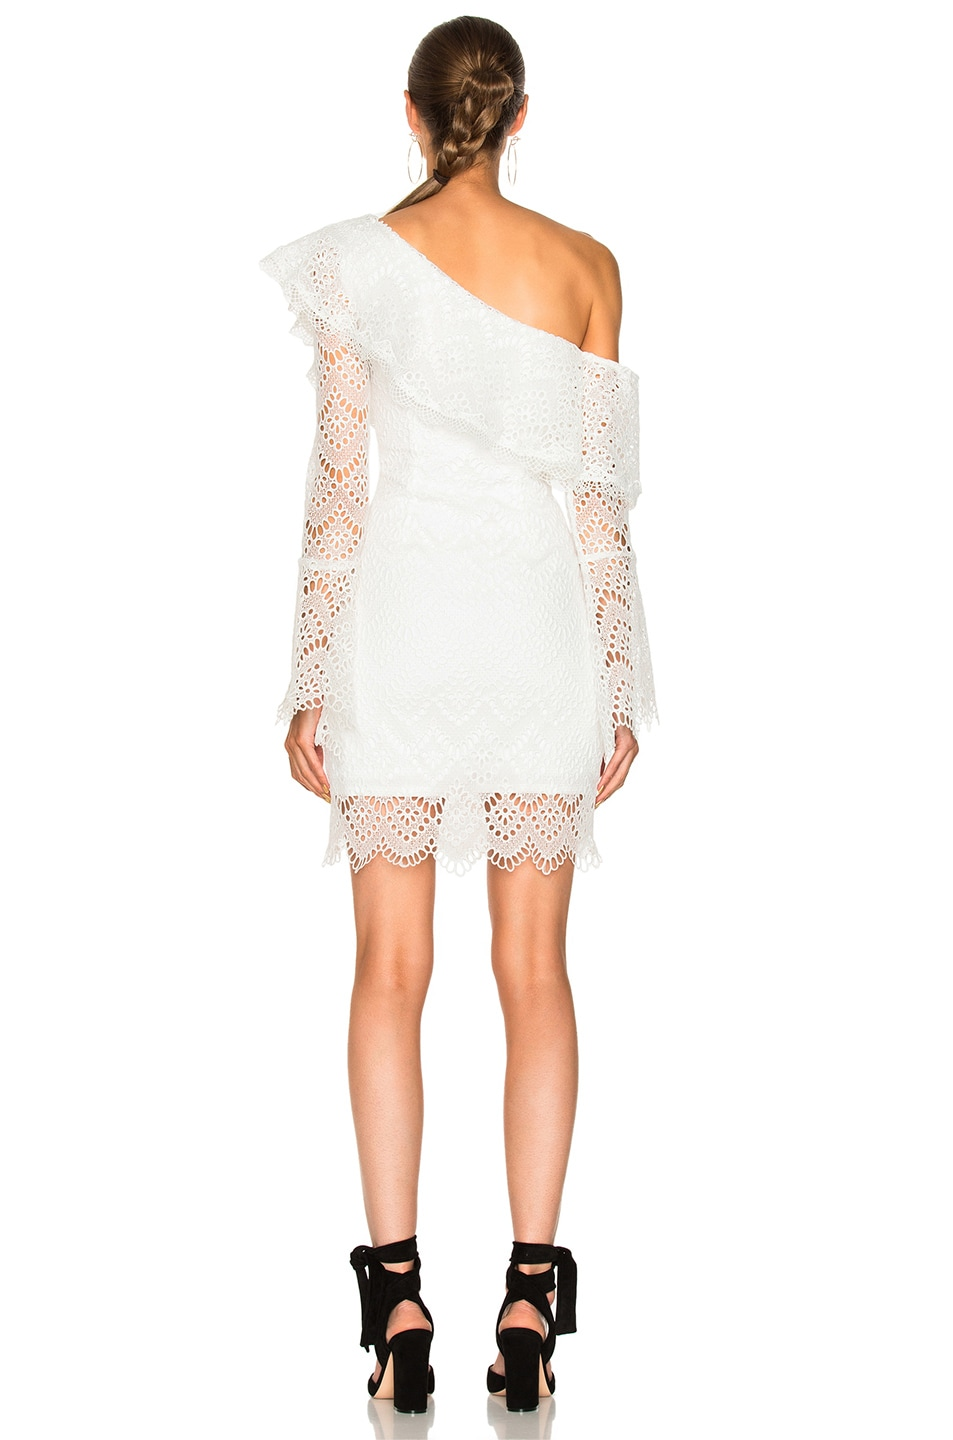 white lace one shoulder dress